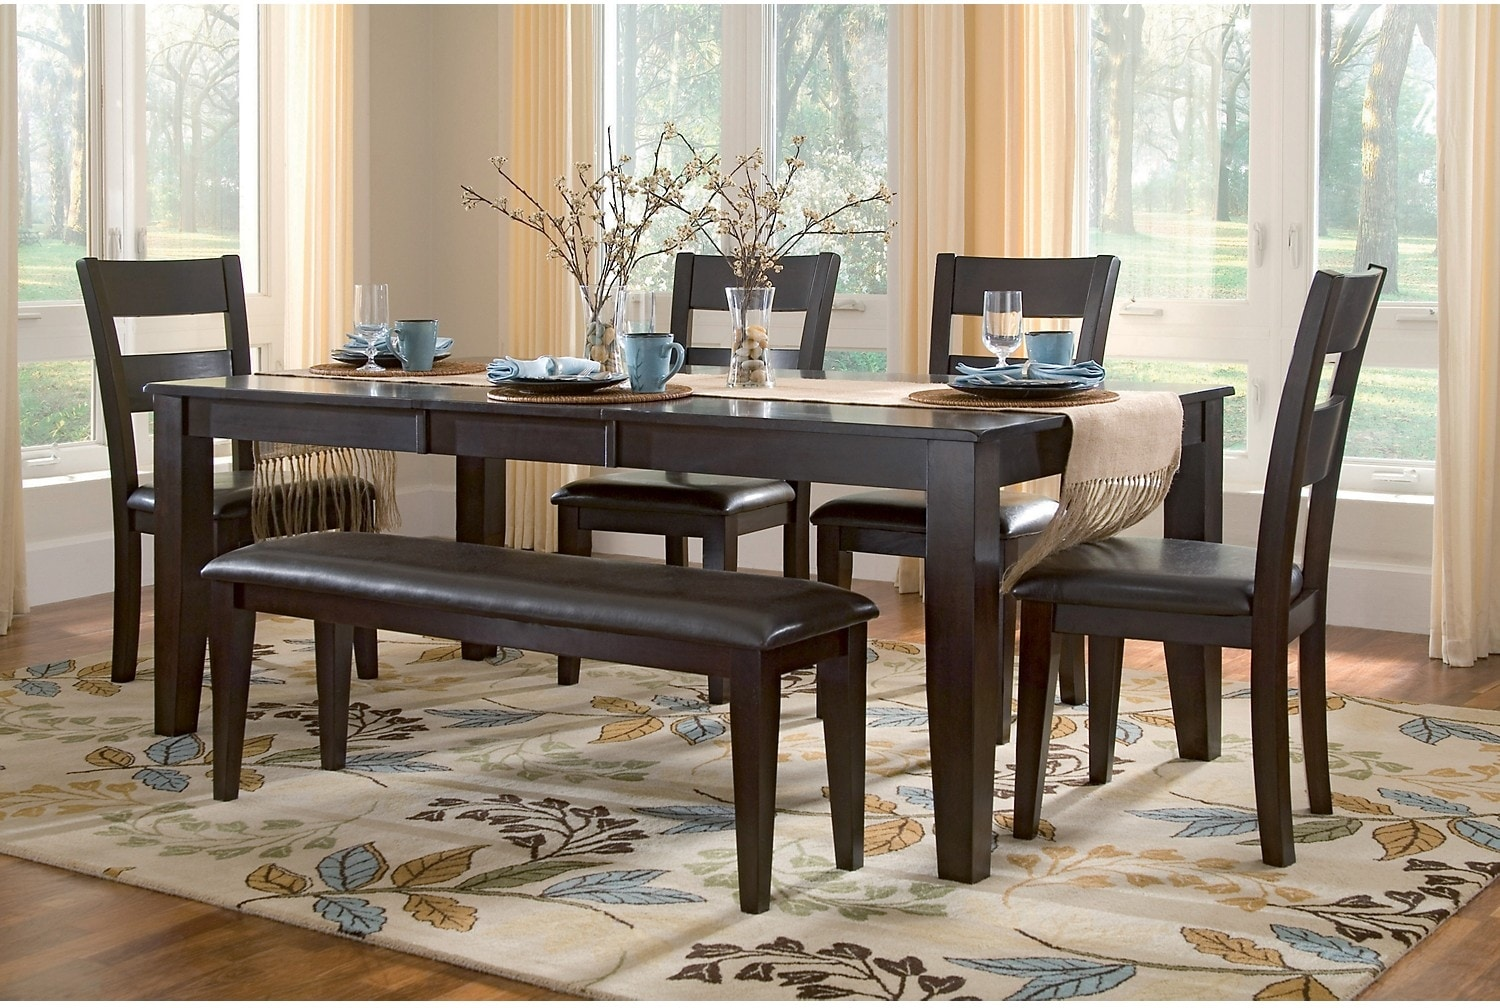 Dining Room Furniture - Dakota 5 Piece Casual Dining Package